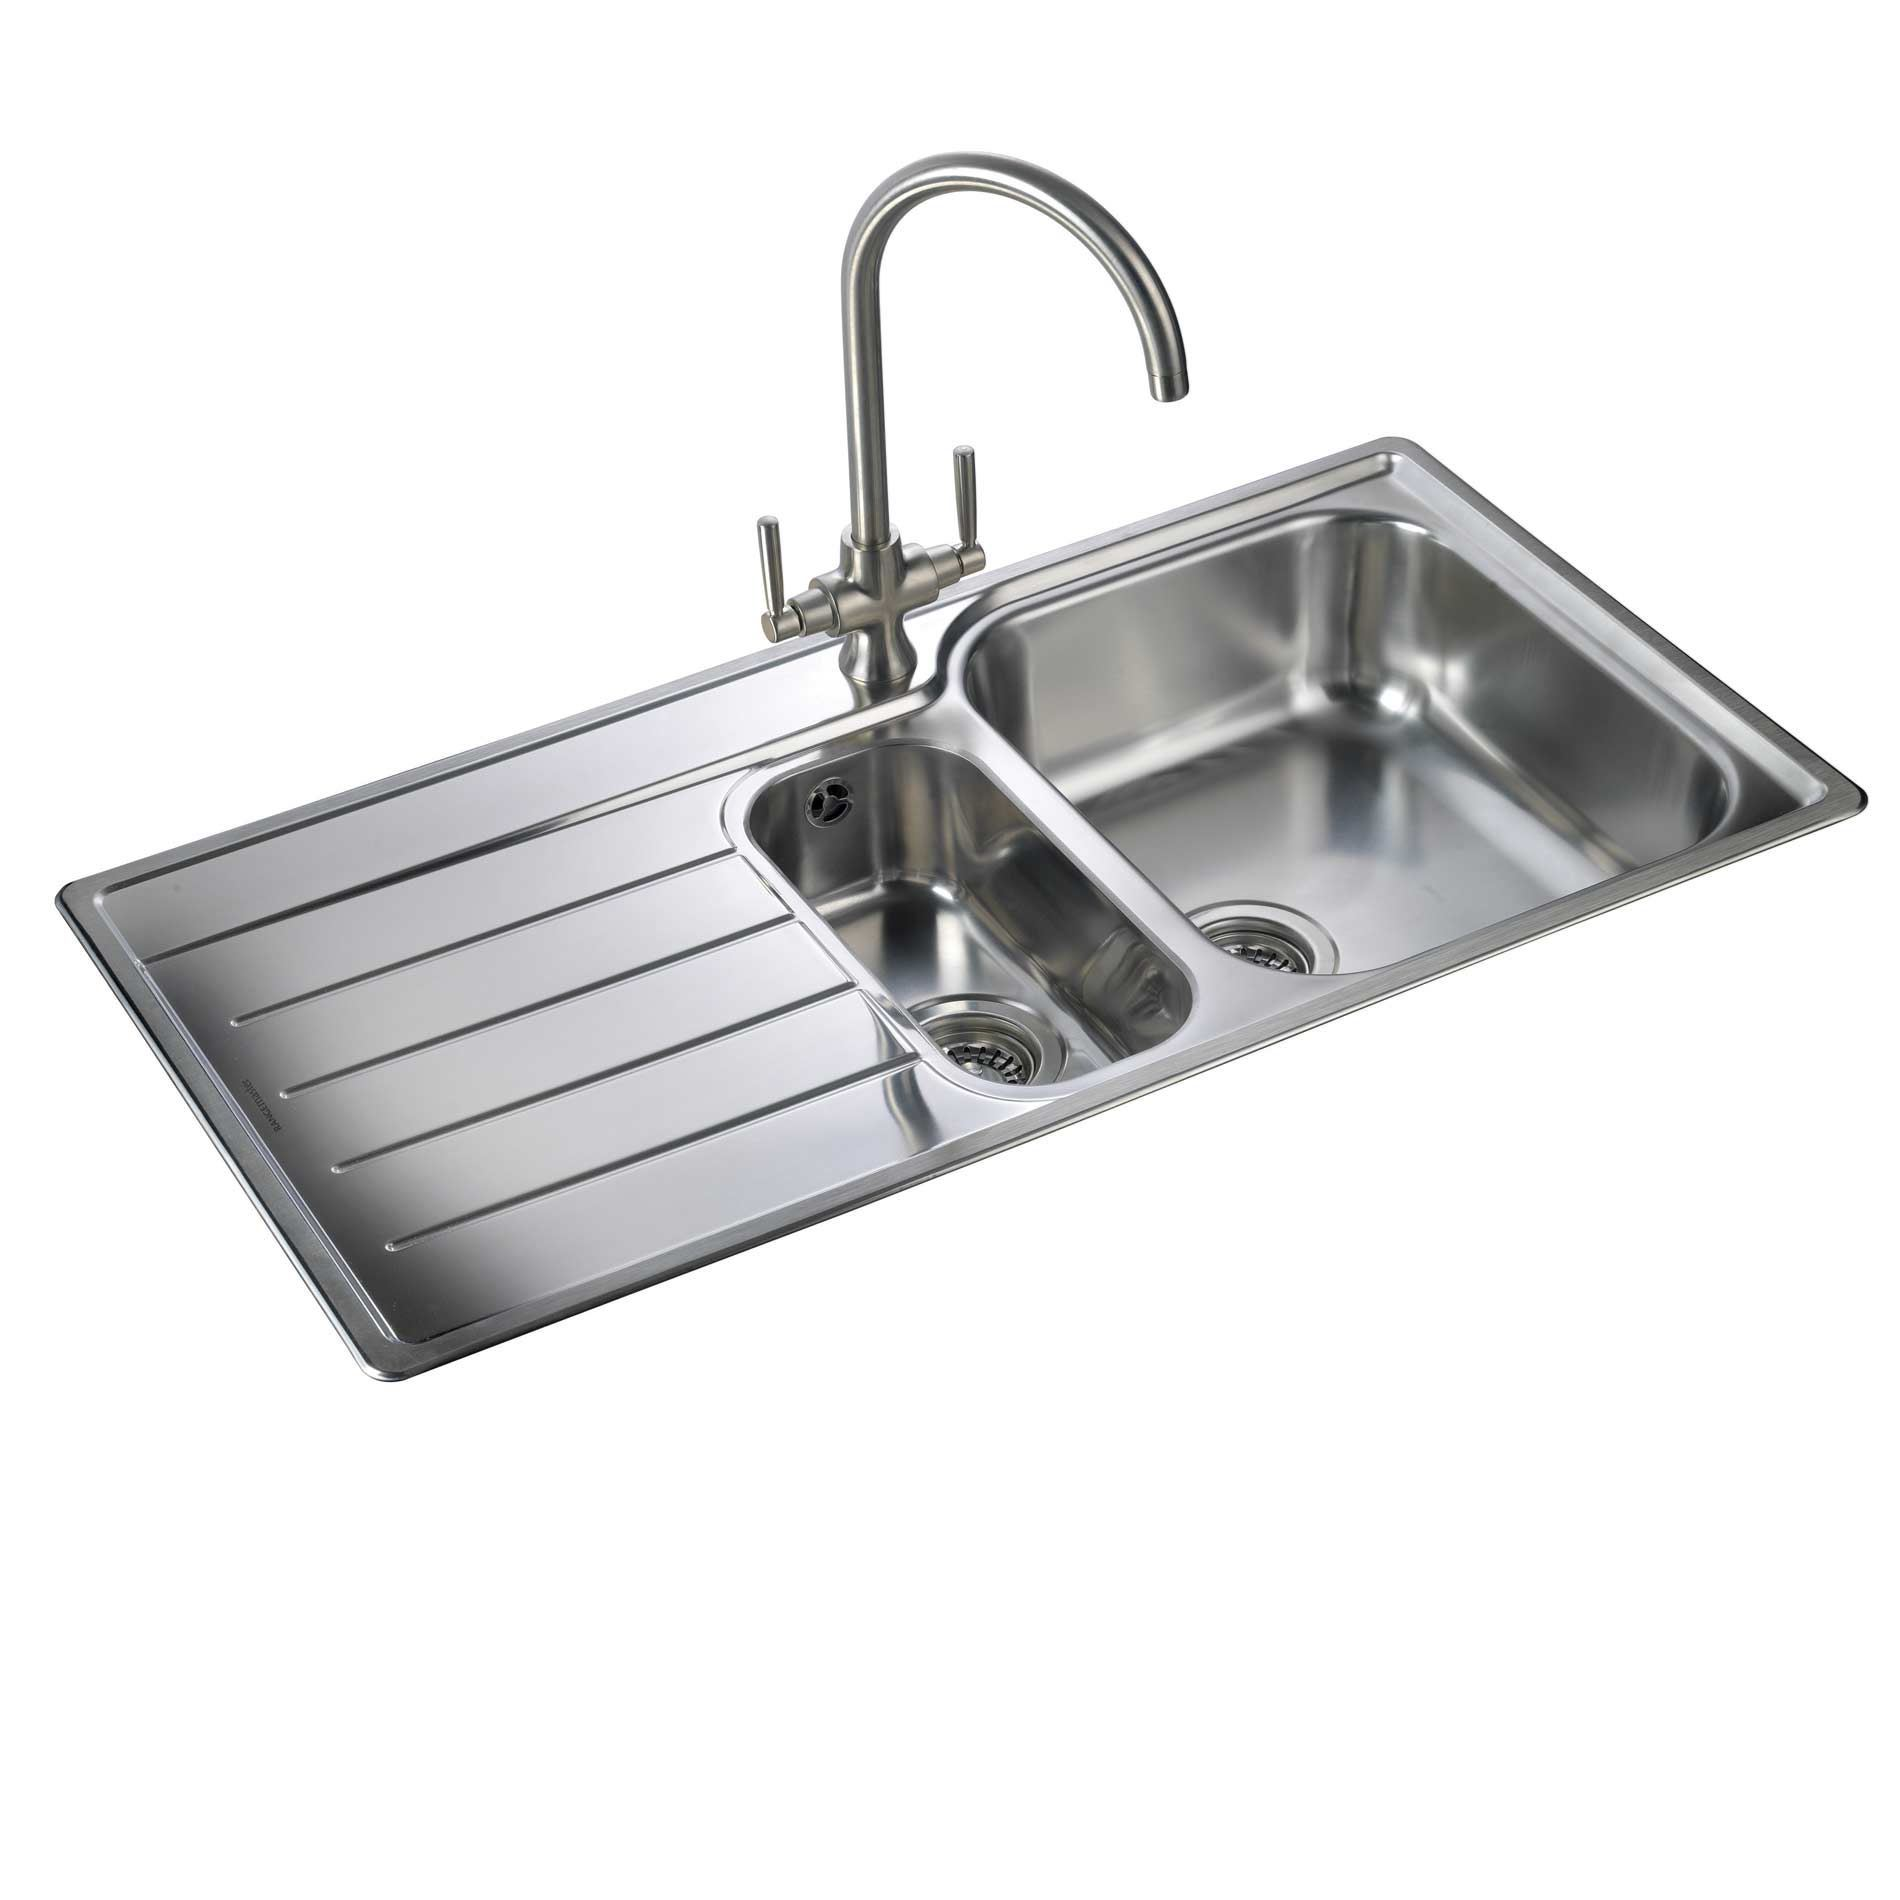 Contemporary Kitchen Ideas Rangemaster Oakland Ol9852 Stainless Steel Sink Kitchen